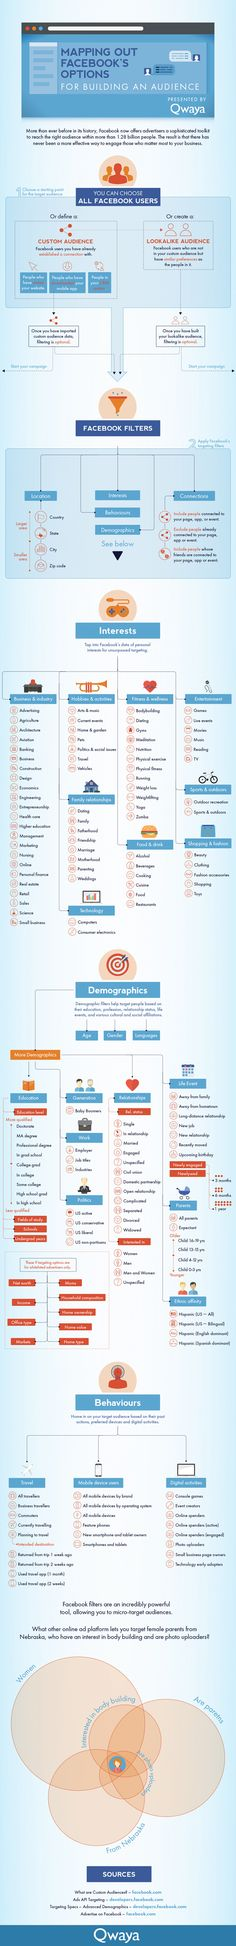 Learn how you can create better Facebook ad targeting with this infographic via @HubSpot